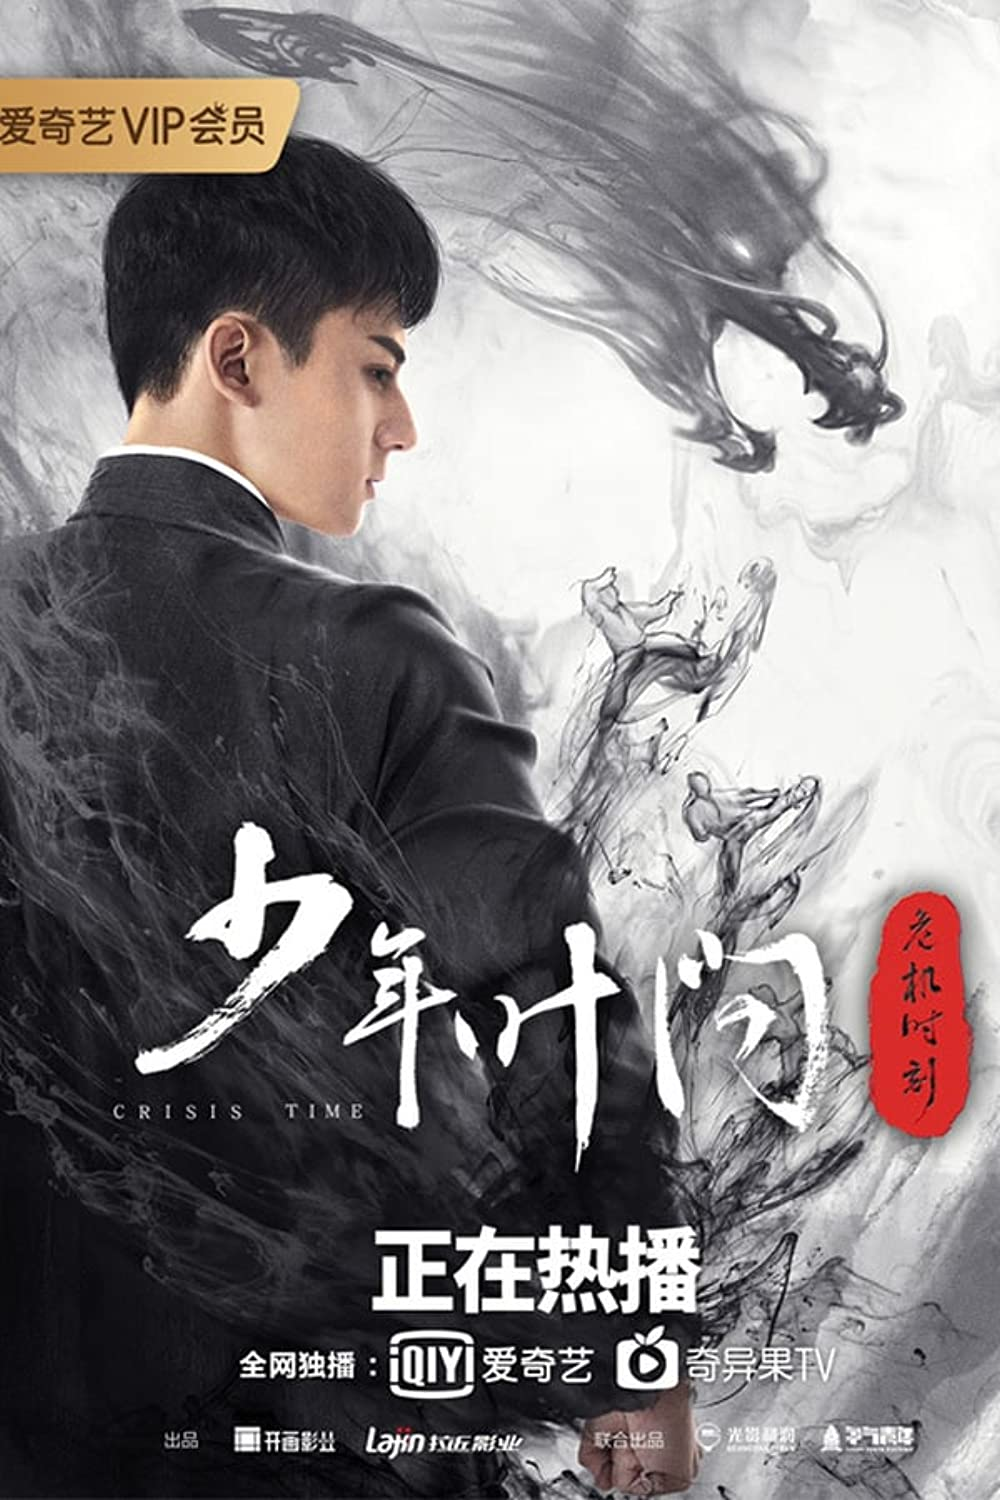 Watch Young Ip Man: Crisis Time Online